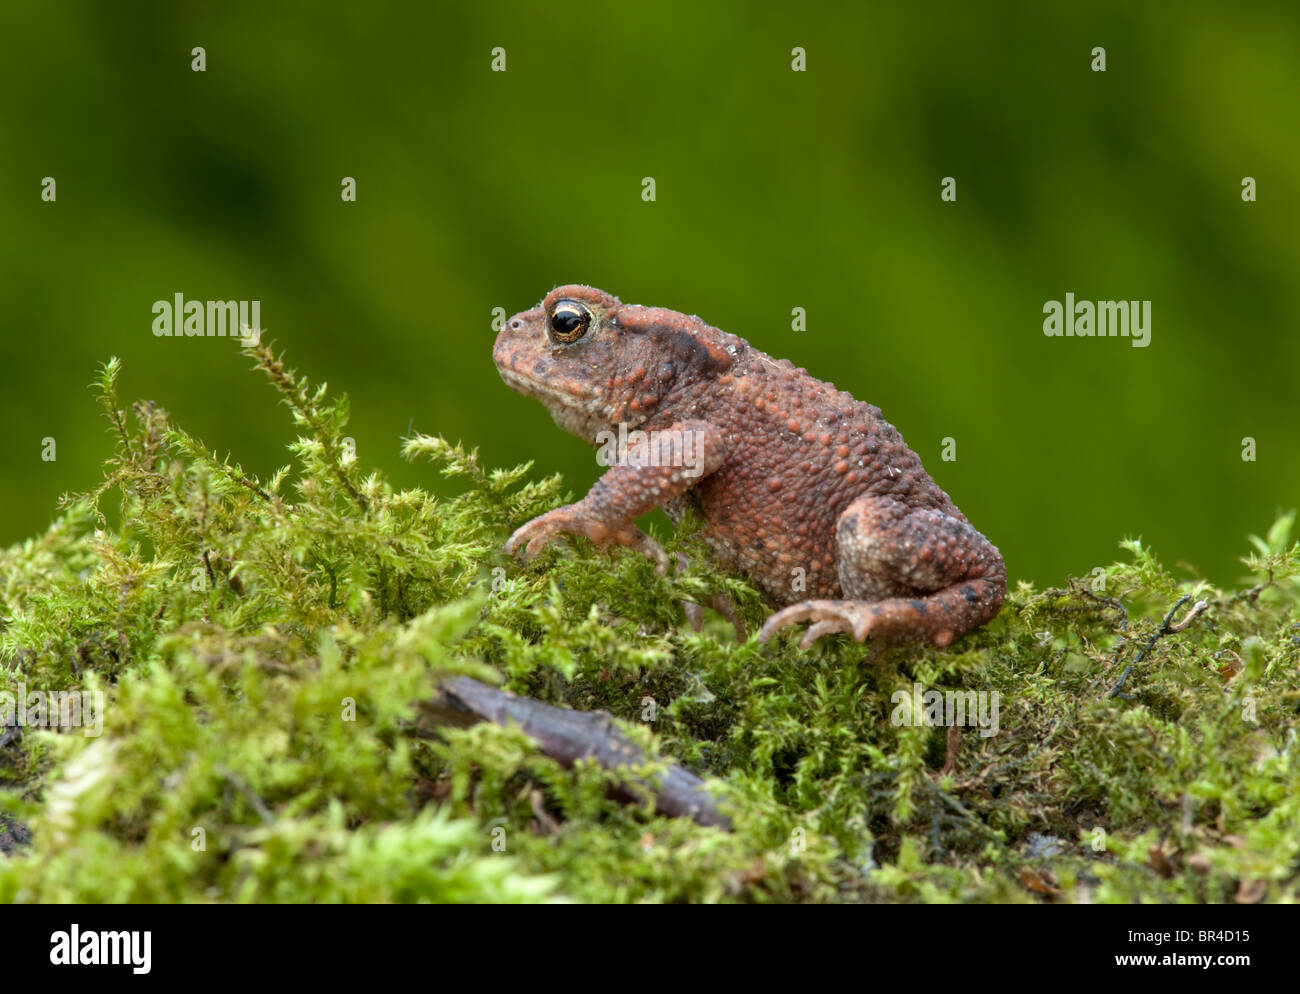 Toad (Bufo bufo) sat on a bed of moss. - Stock Image